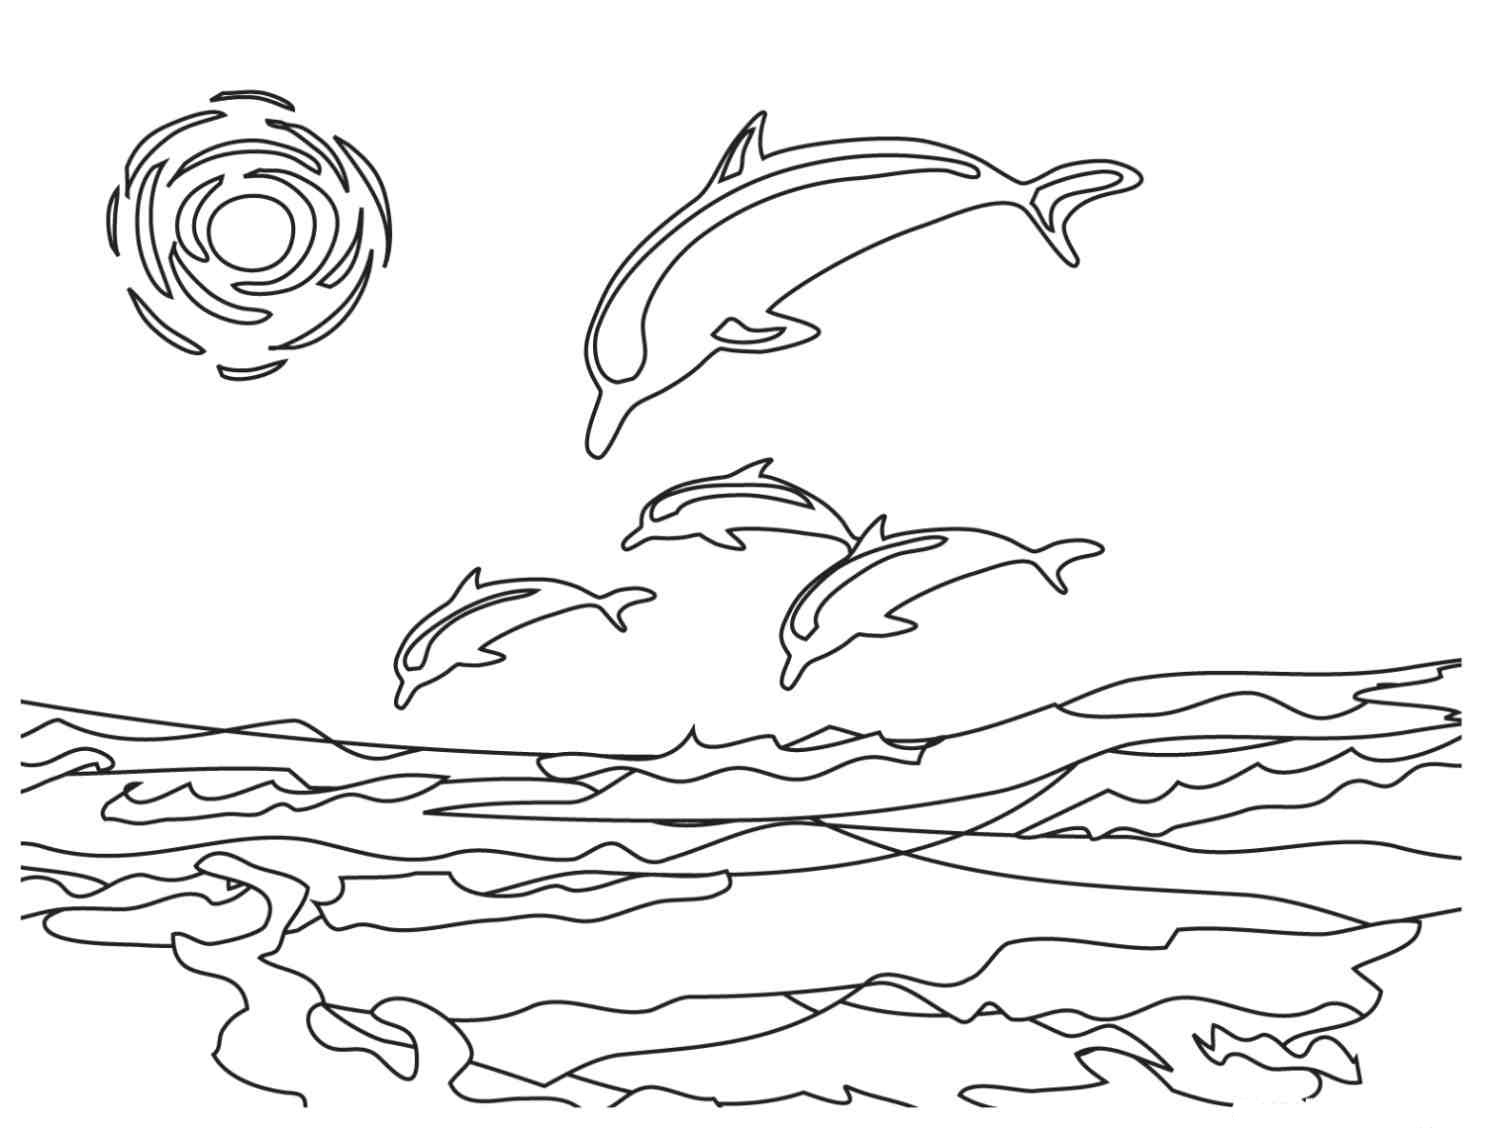 dolphin coloring pages free dolphin coloring pages free for kids gtgt disney coloring pages pages coloring free dolphin